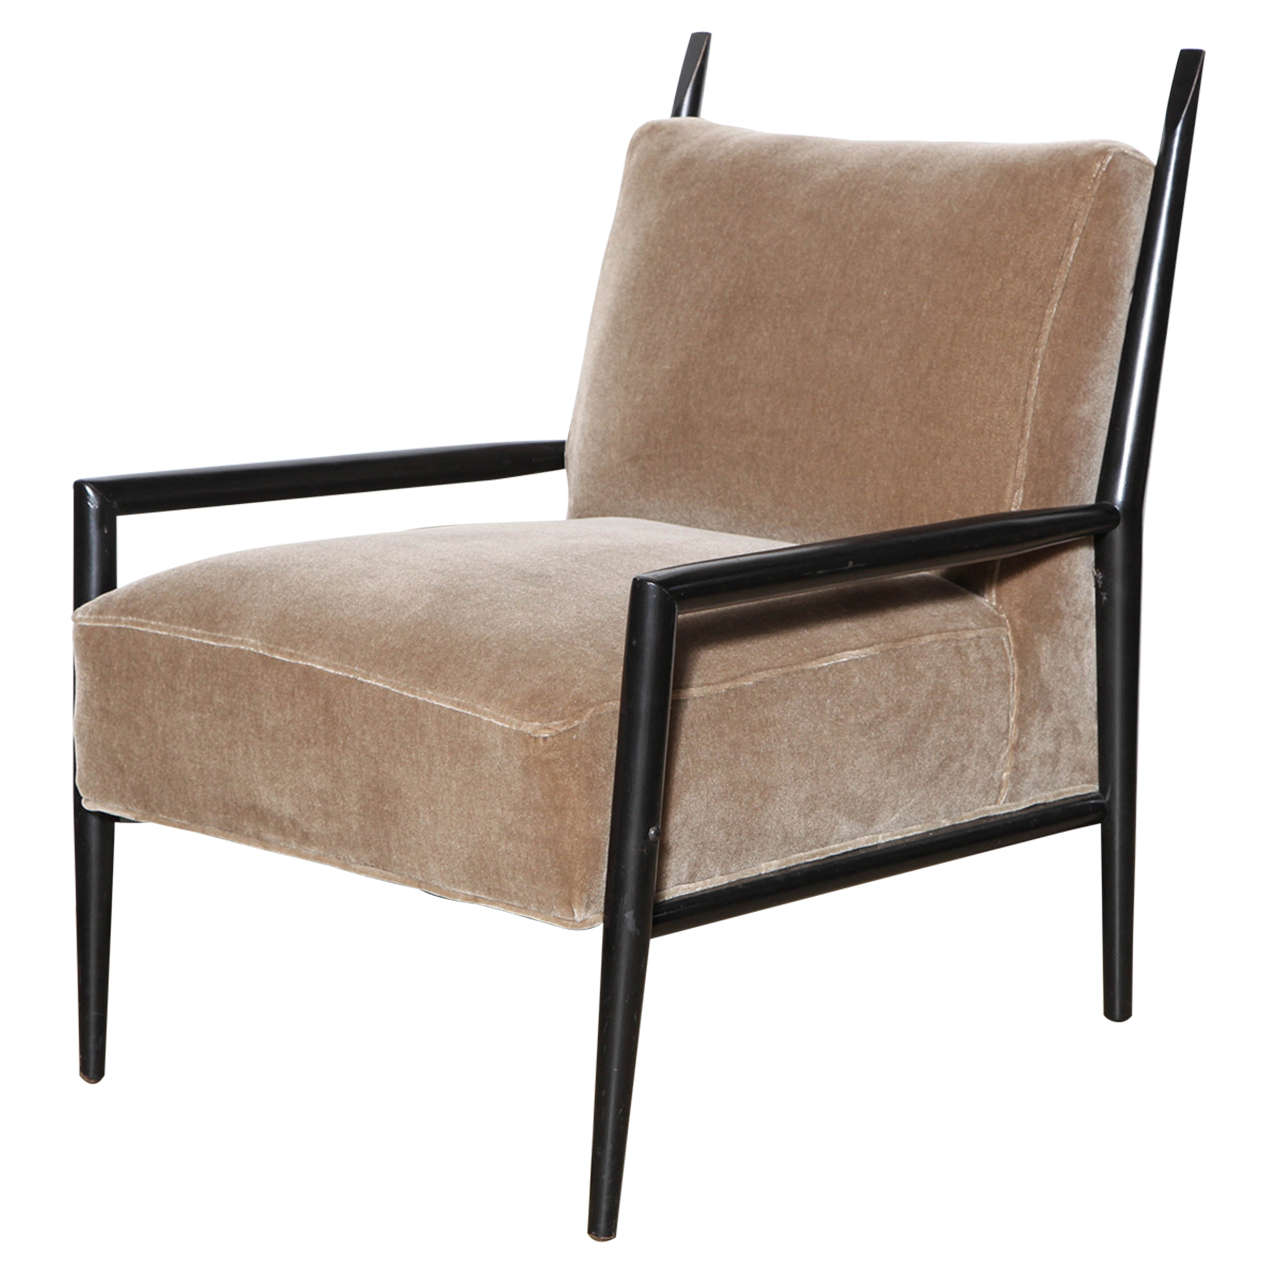 Paul McCobb Planner Group Lounge Chair